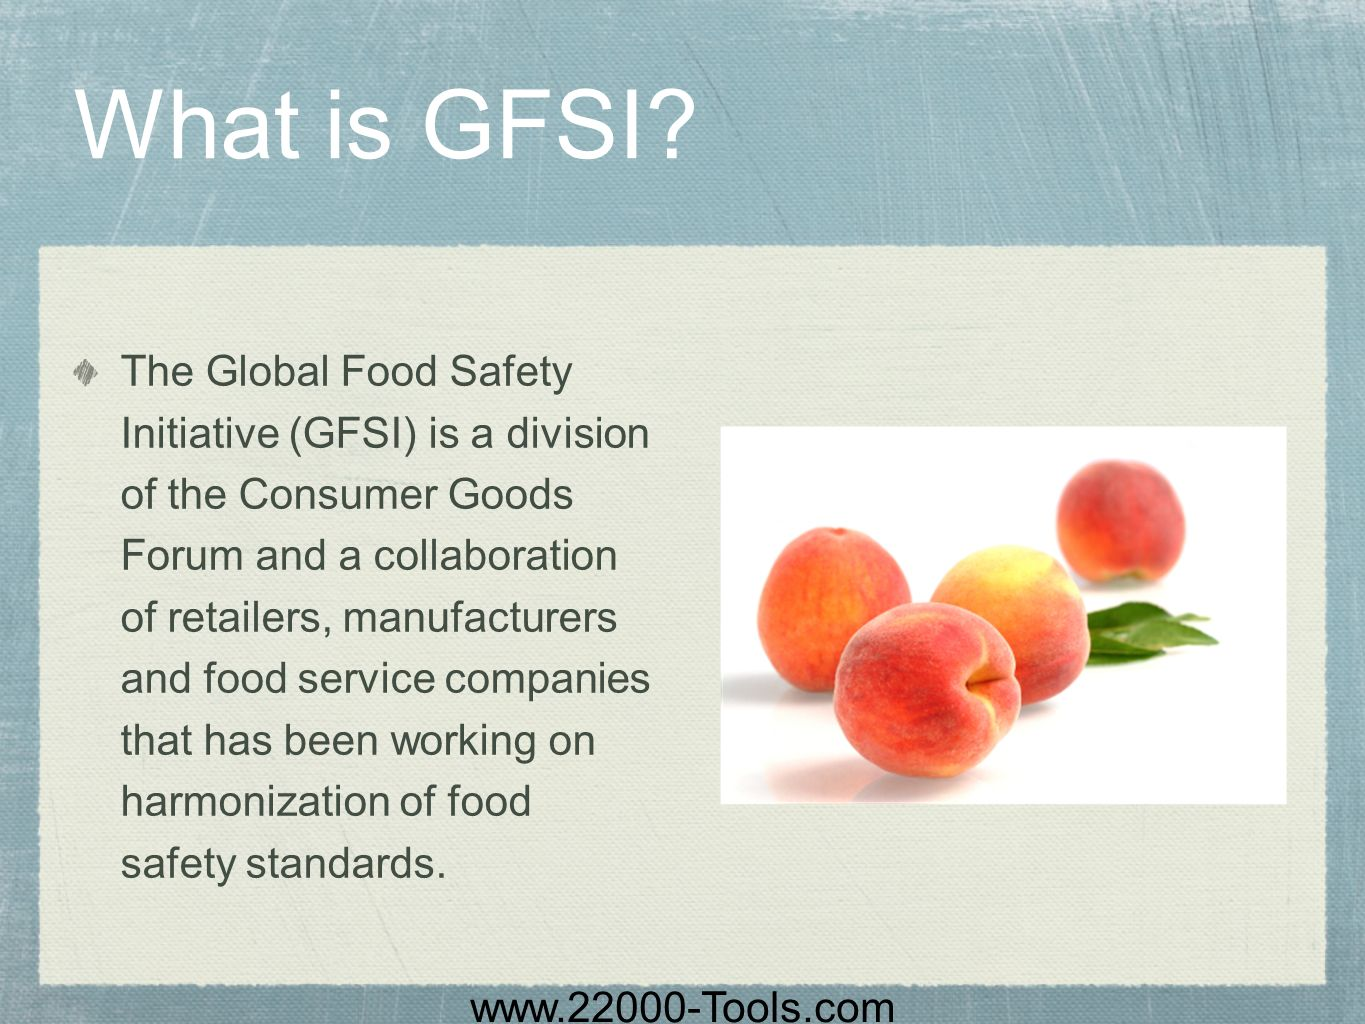 What is GFSI